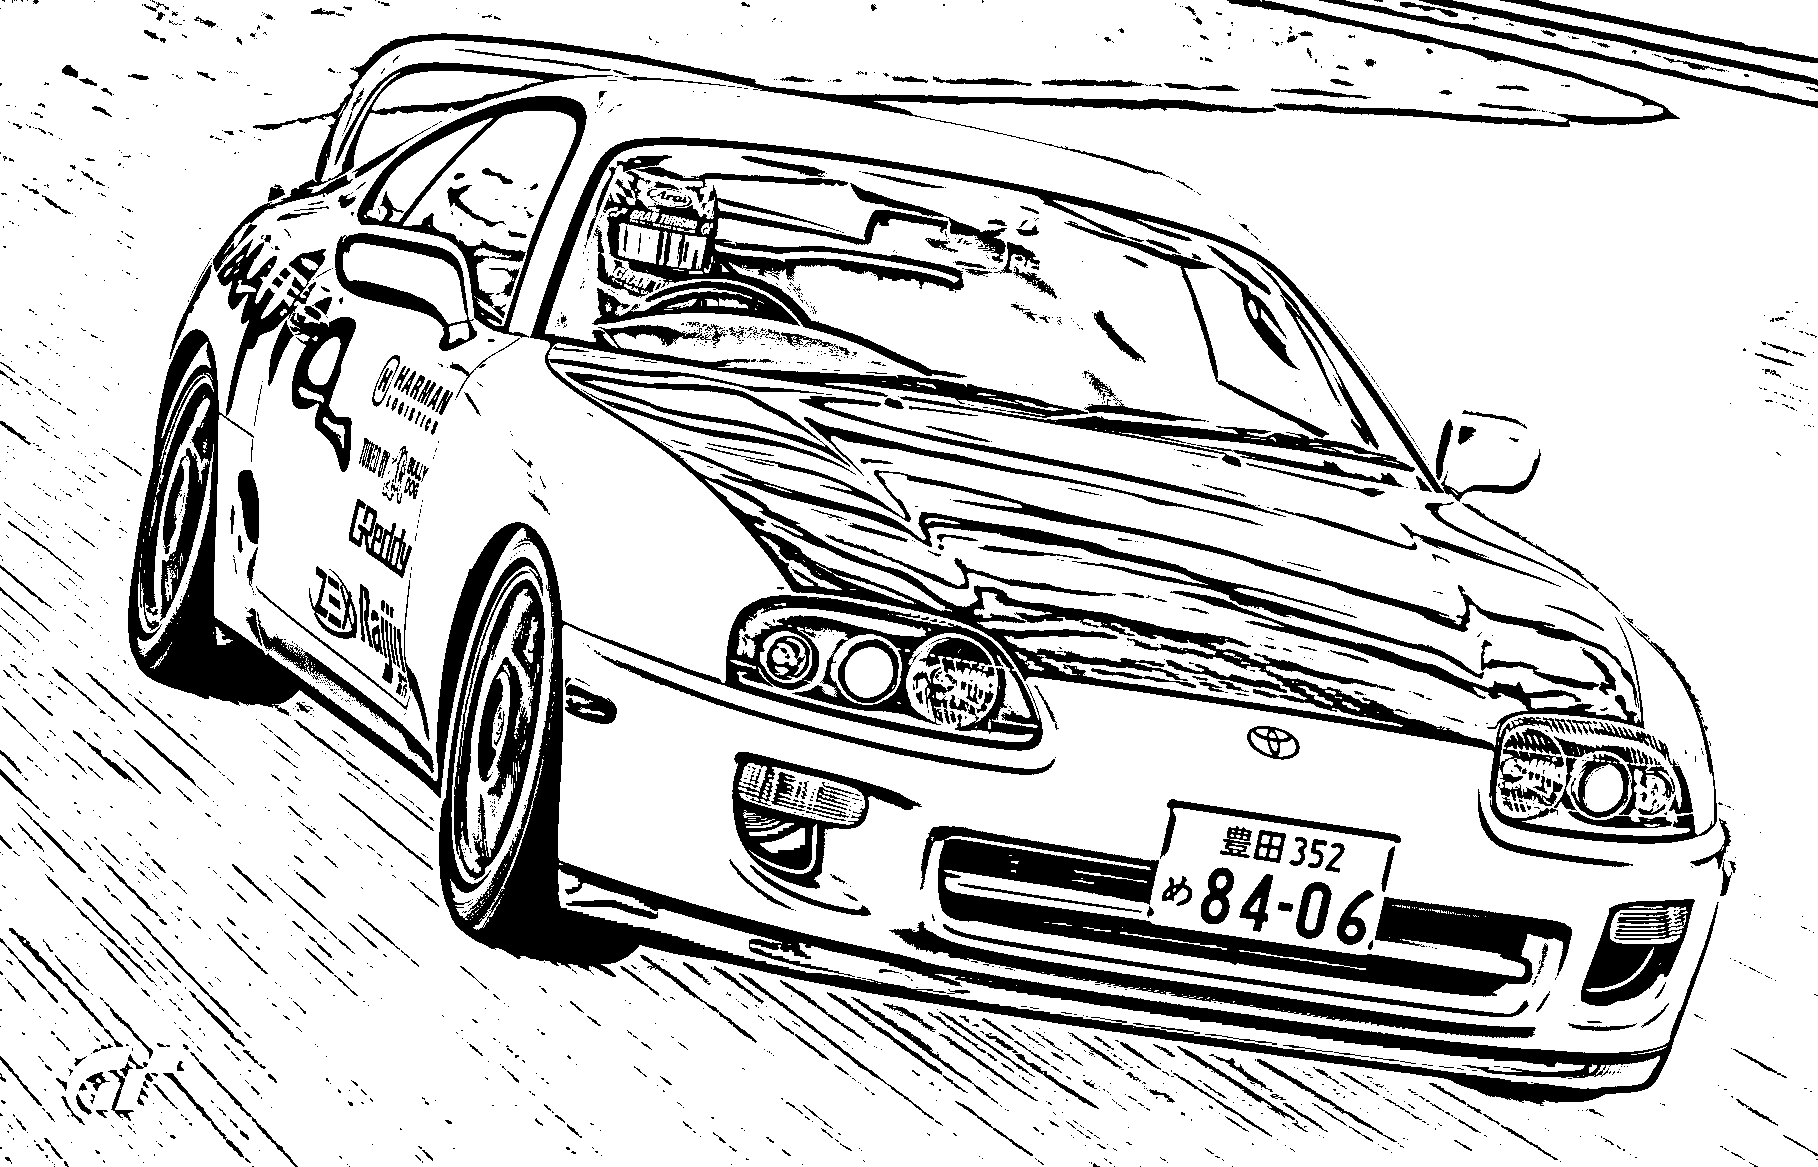 just addicted on making sketch versions of my GT Sport Scapes photos